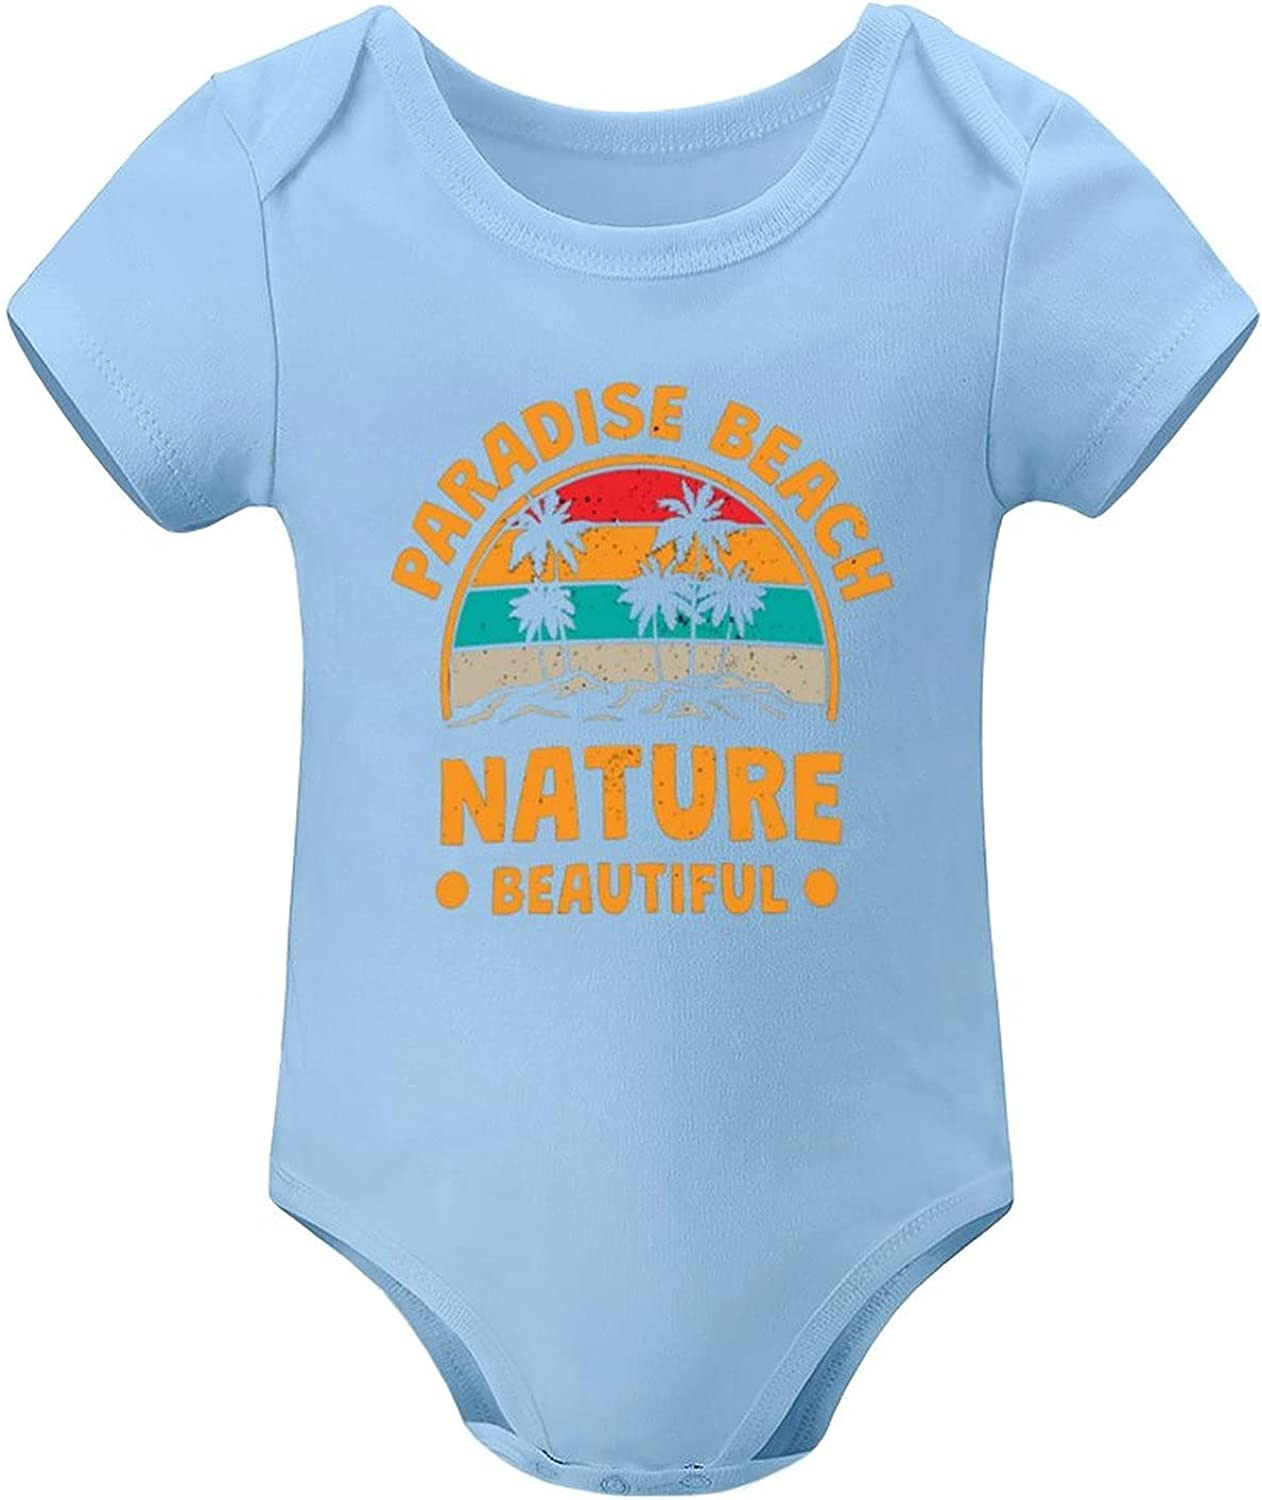 Paradise 2021 autumn and winter new Nature Beautiful Beach Girl Gorgeous Onesies Bodysuits Baby